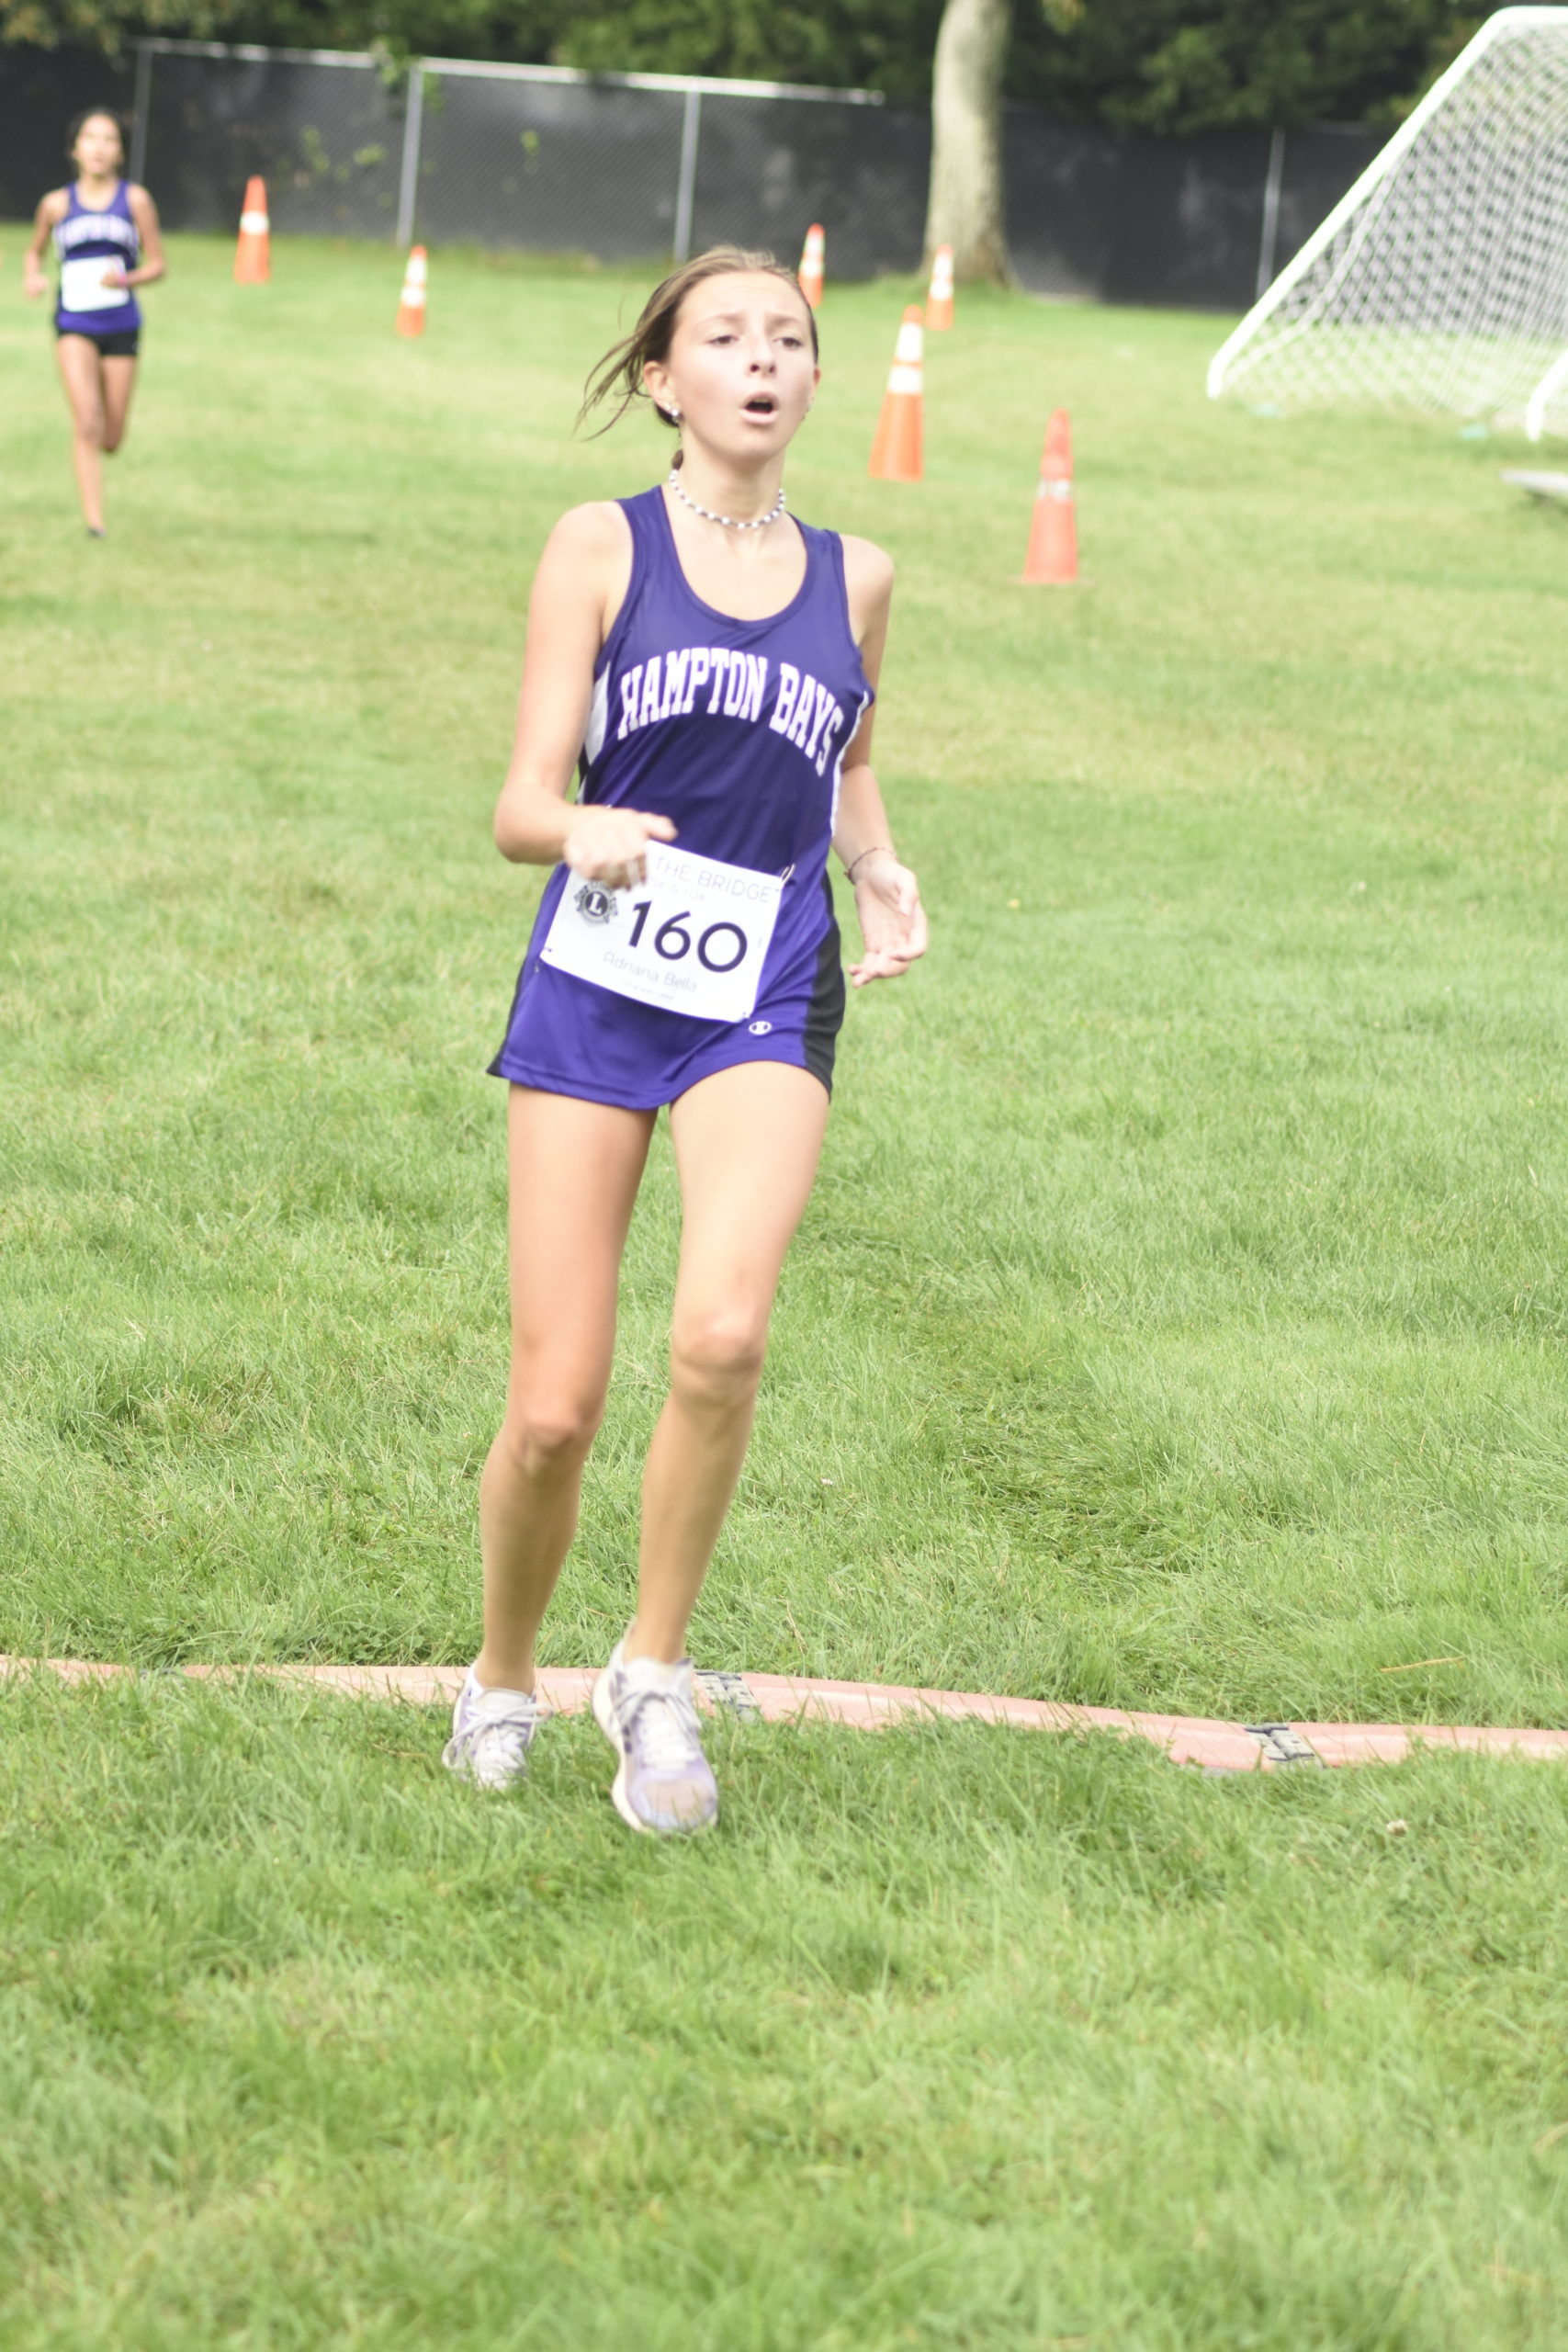 Adriana Bella Tapfer, 13, of Hampton Bays, and a member of the Baymen cross country team, finished second among women.